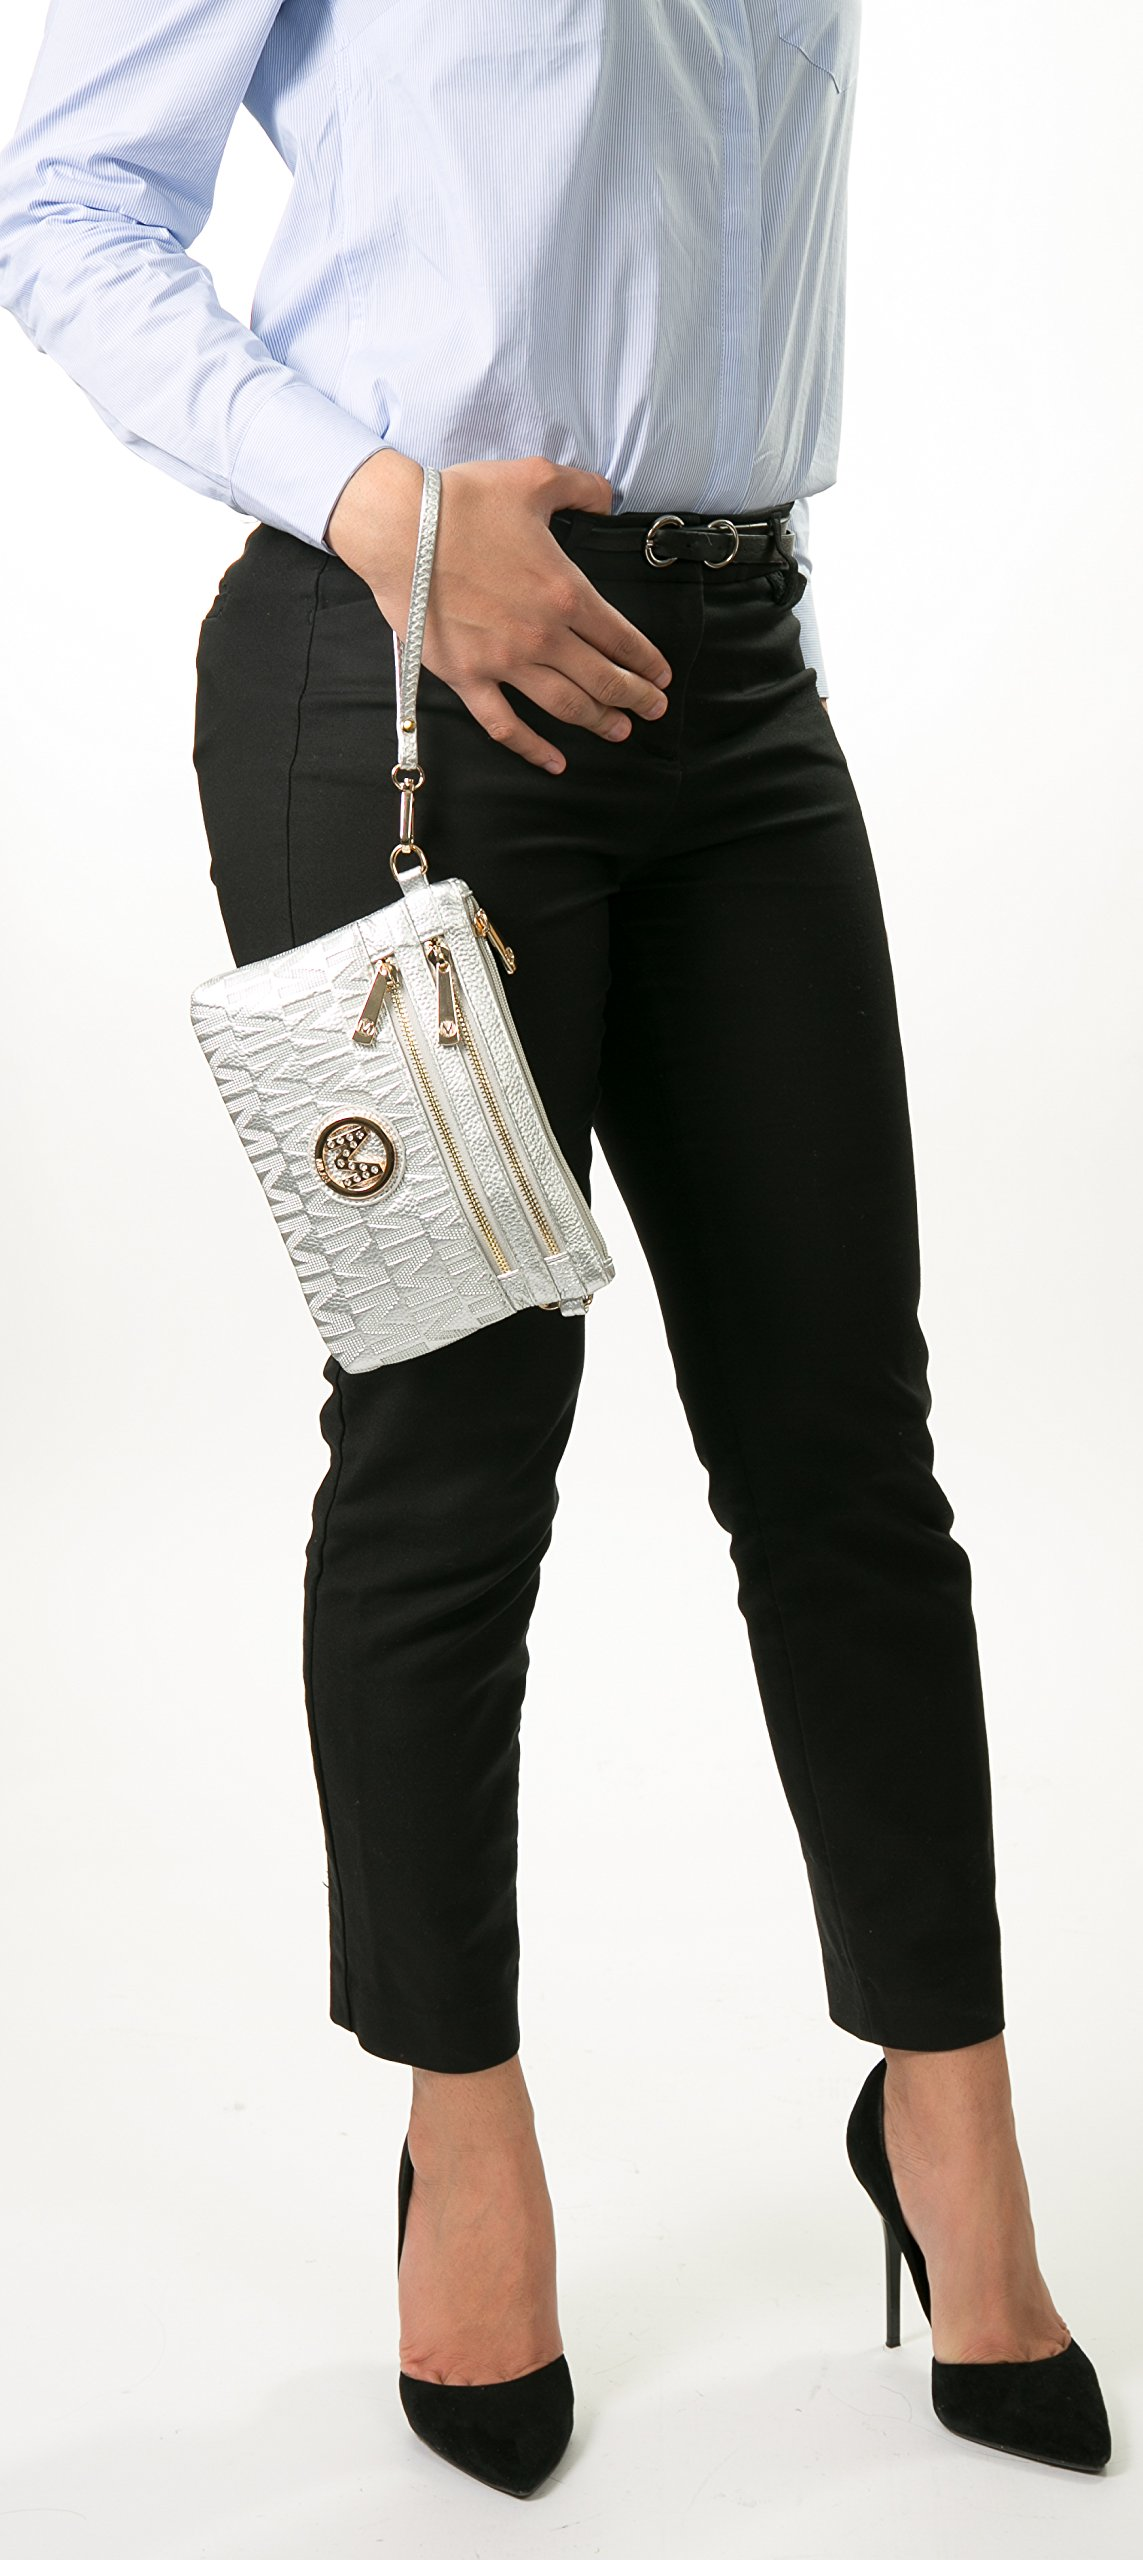 Wristlet | 2-in-1 Crossbody Bags for Women | MKF Collection Roonie Milan Signature Design by MKF Collection (Image #5)